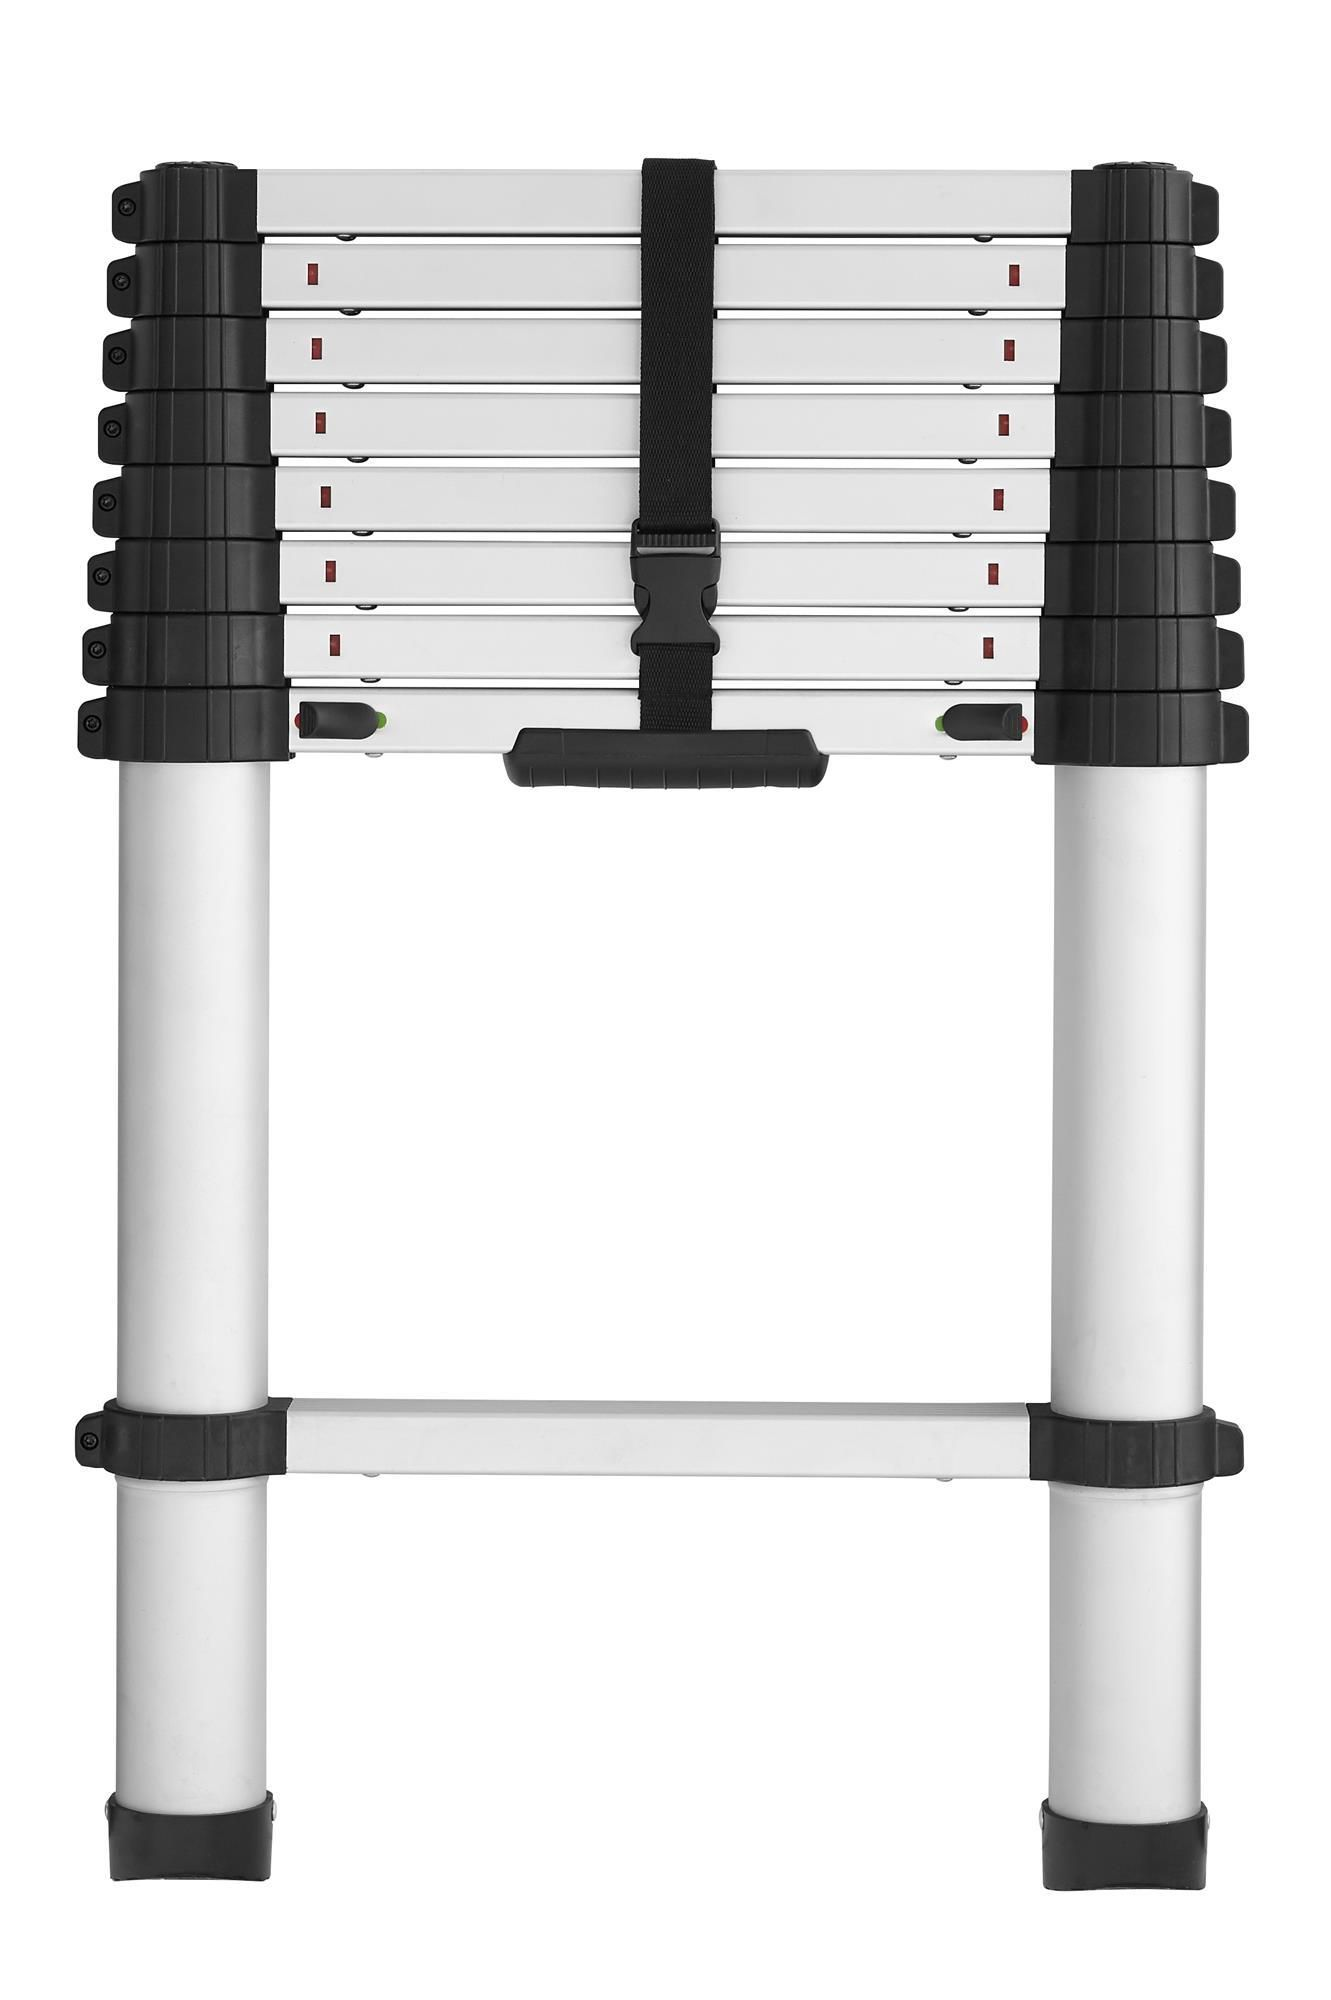 Cosco Ladder Telescoping Ladder Extending Ladder Collapsible Ladder Extension Ladder 12 Ft Ladder Aluminium Ladder Cosco Telescopic Ladder